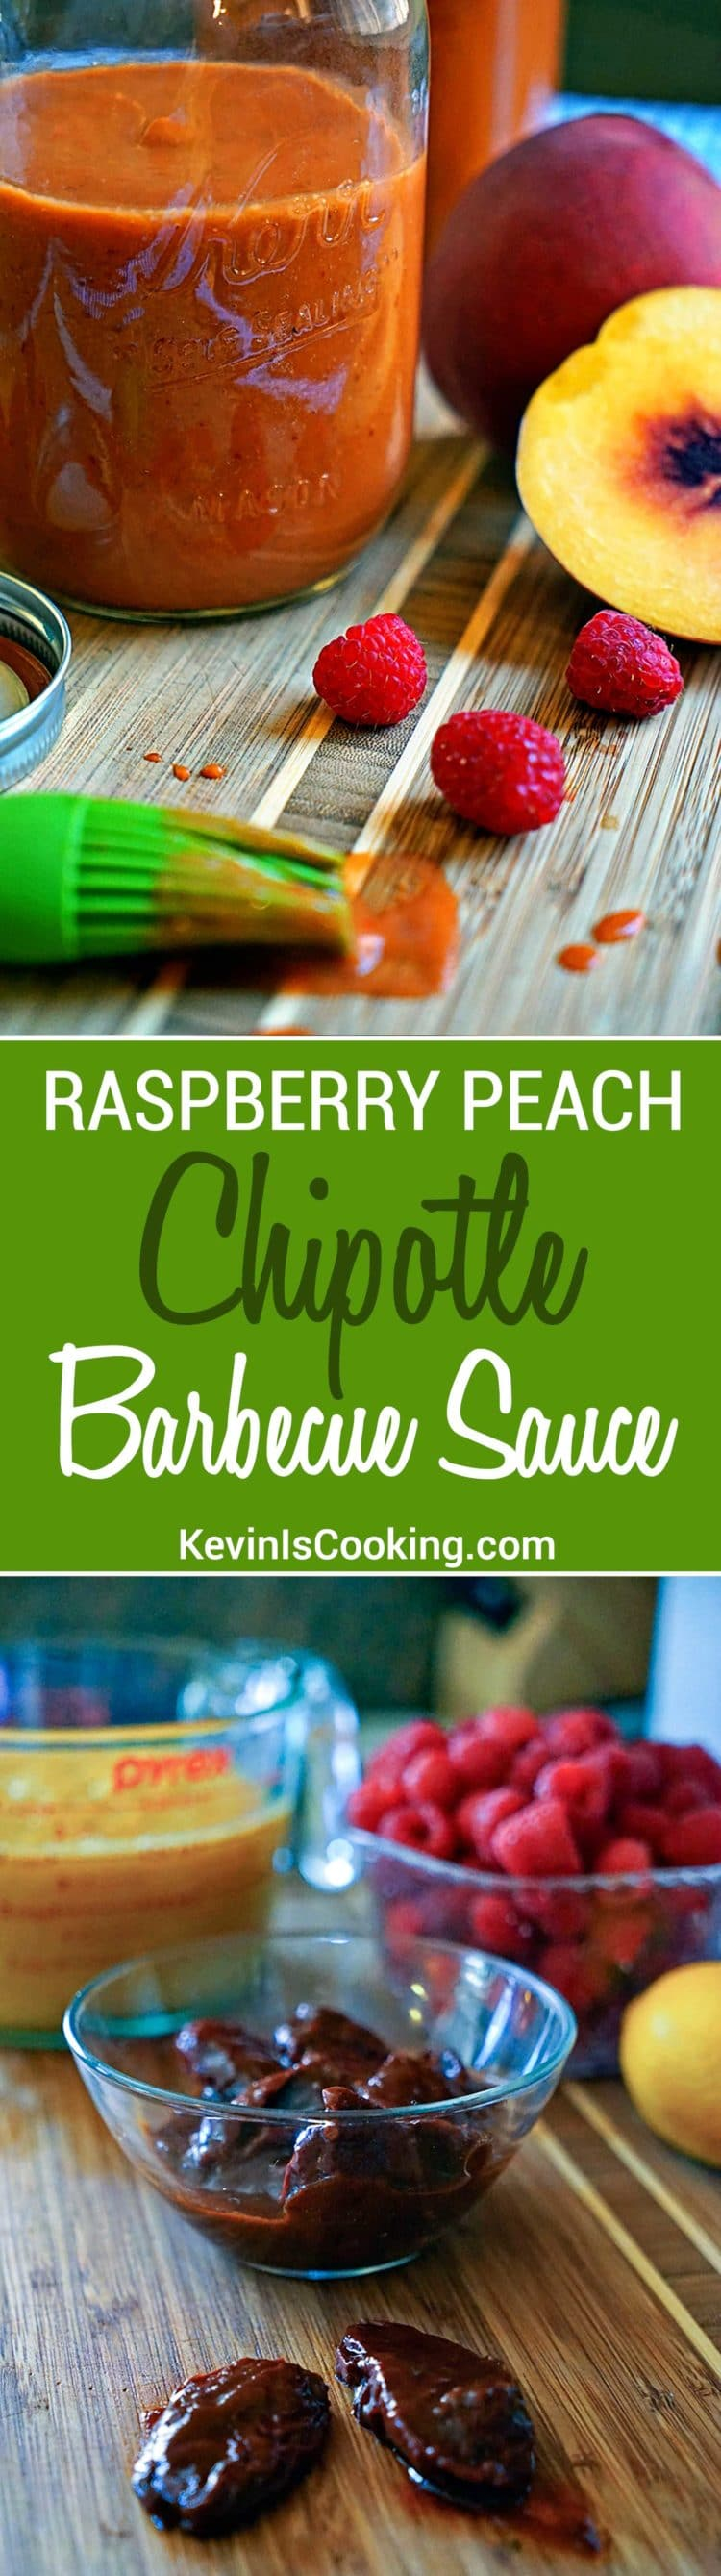 Raspberry Peach Chipotle Barbecue Sauce. Finger licking good with just enough heat and tangy fruit flavor to keep you reaching back for more.